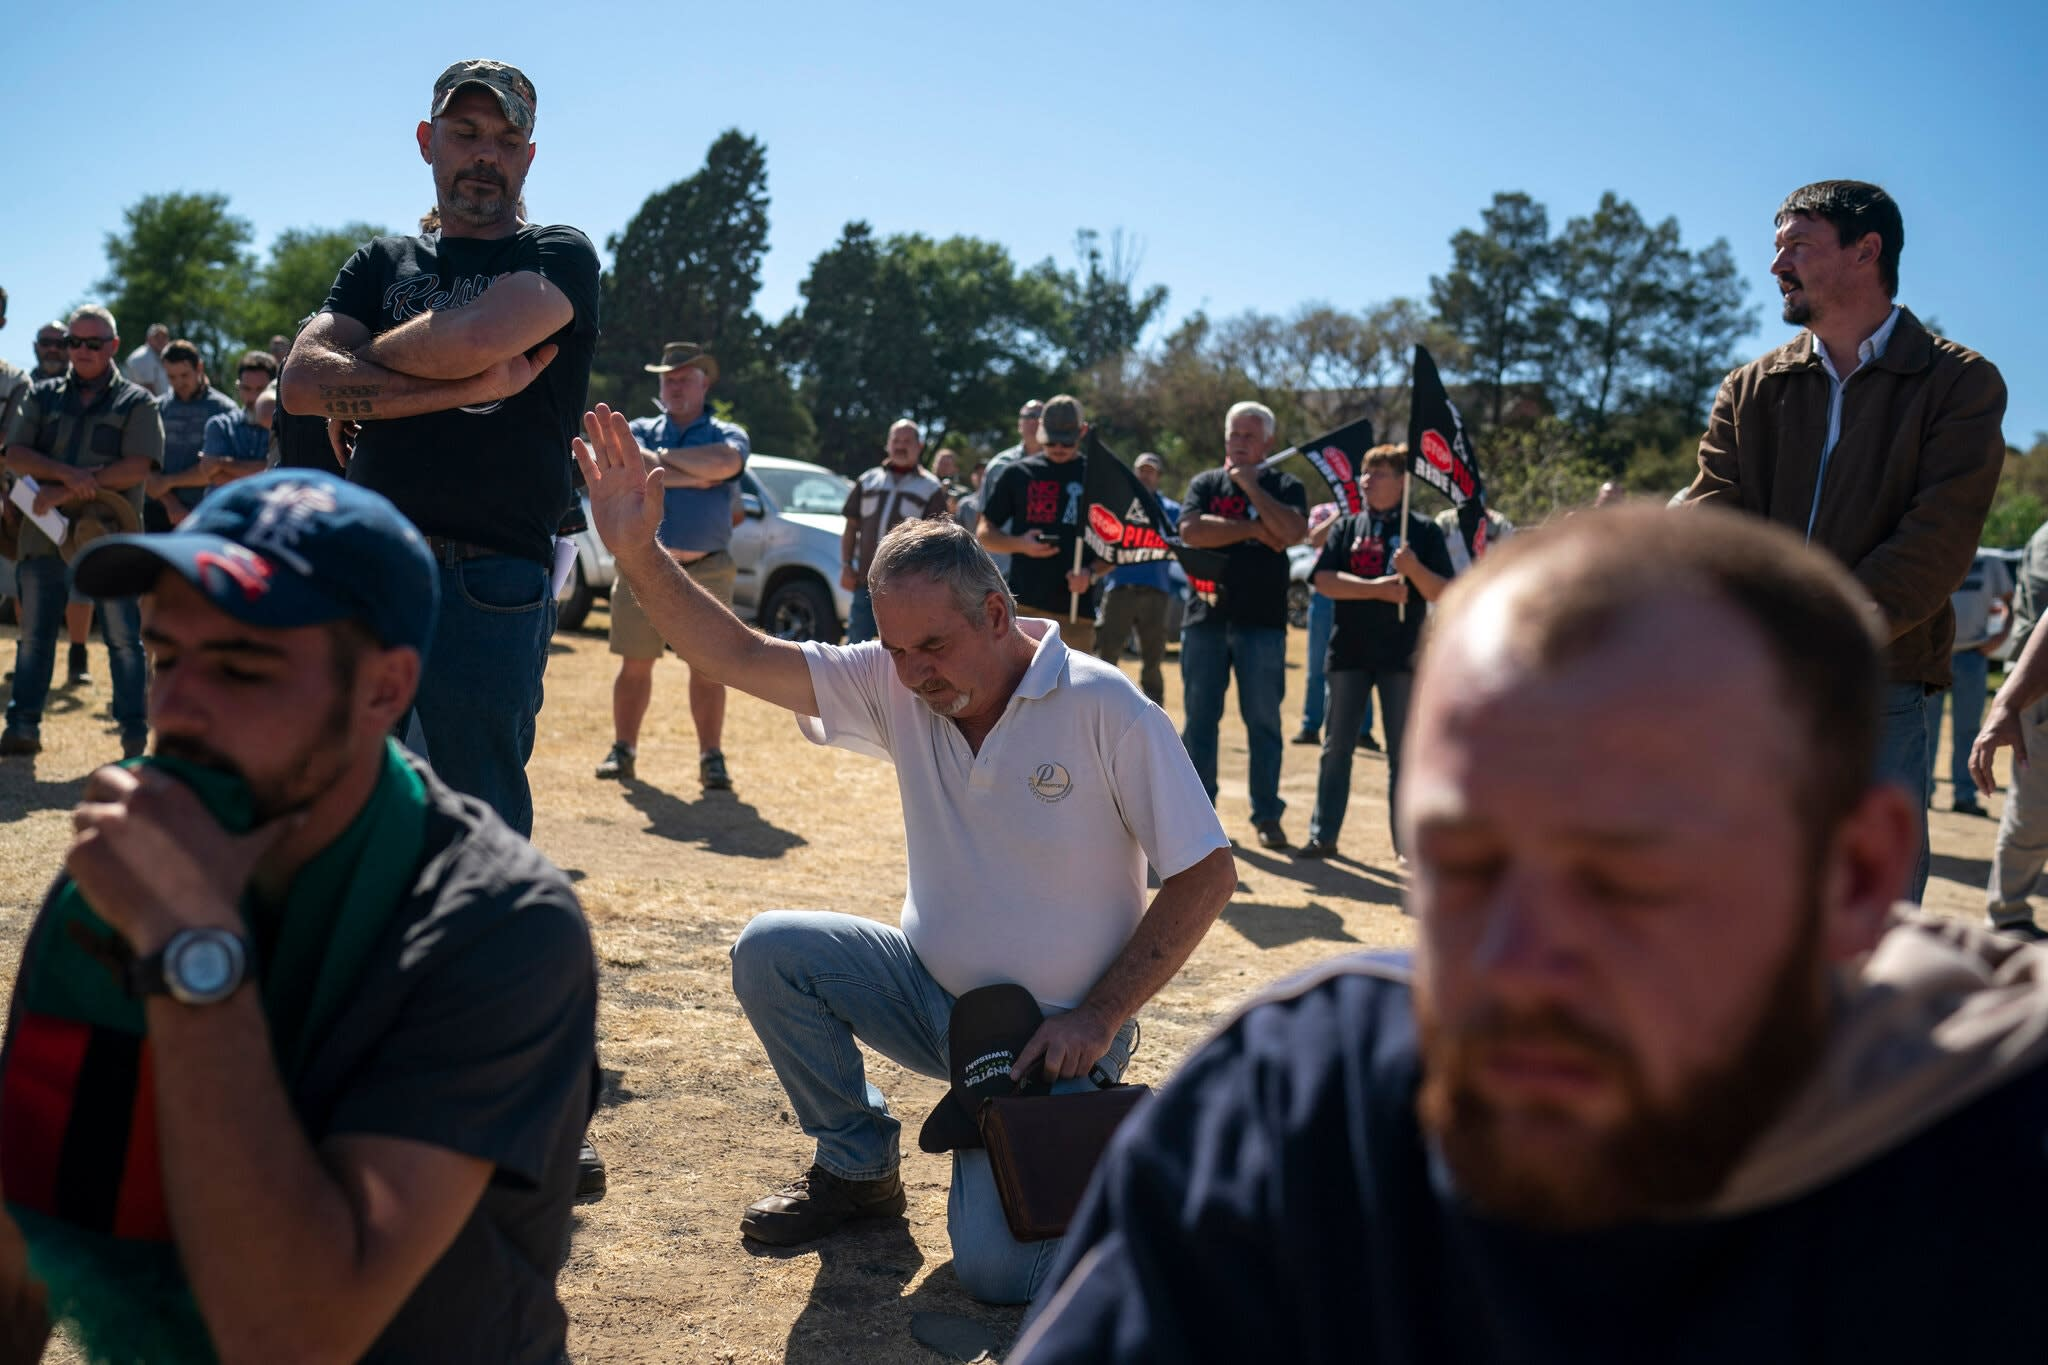 Killing of White Farmer Becomes a Flash Point in S.Africa